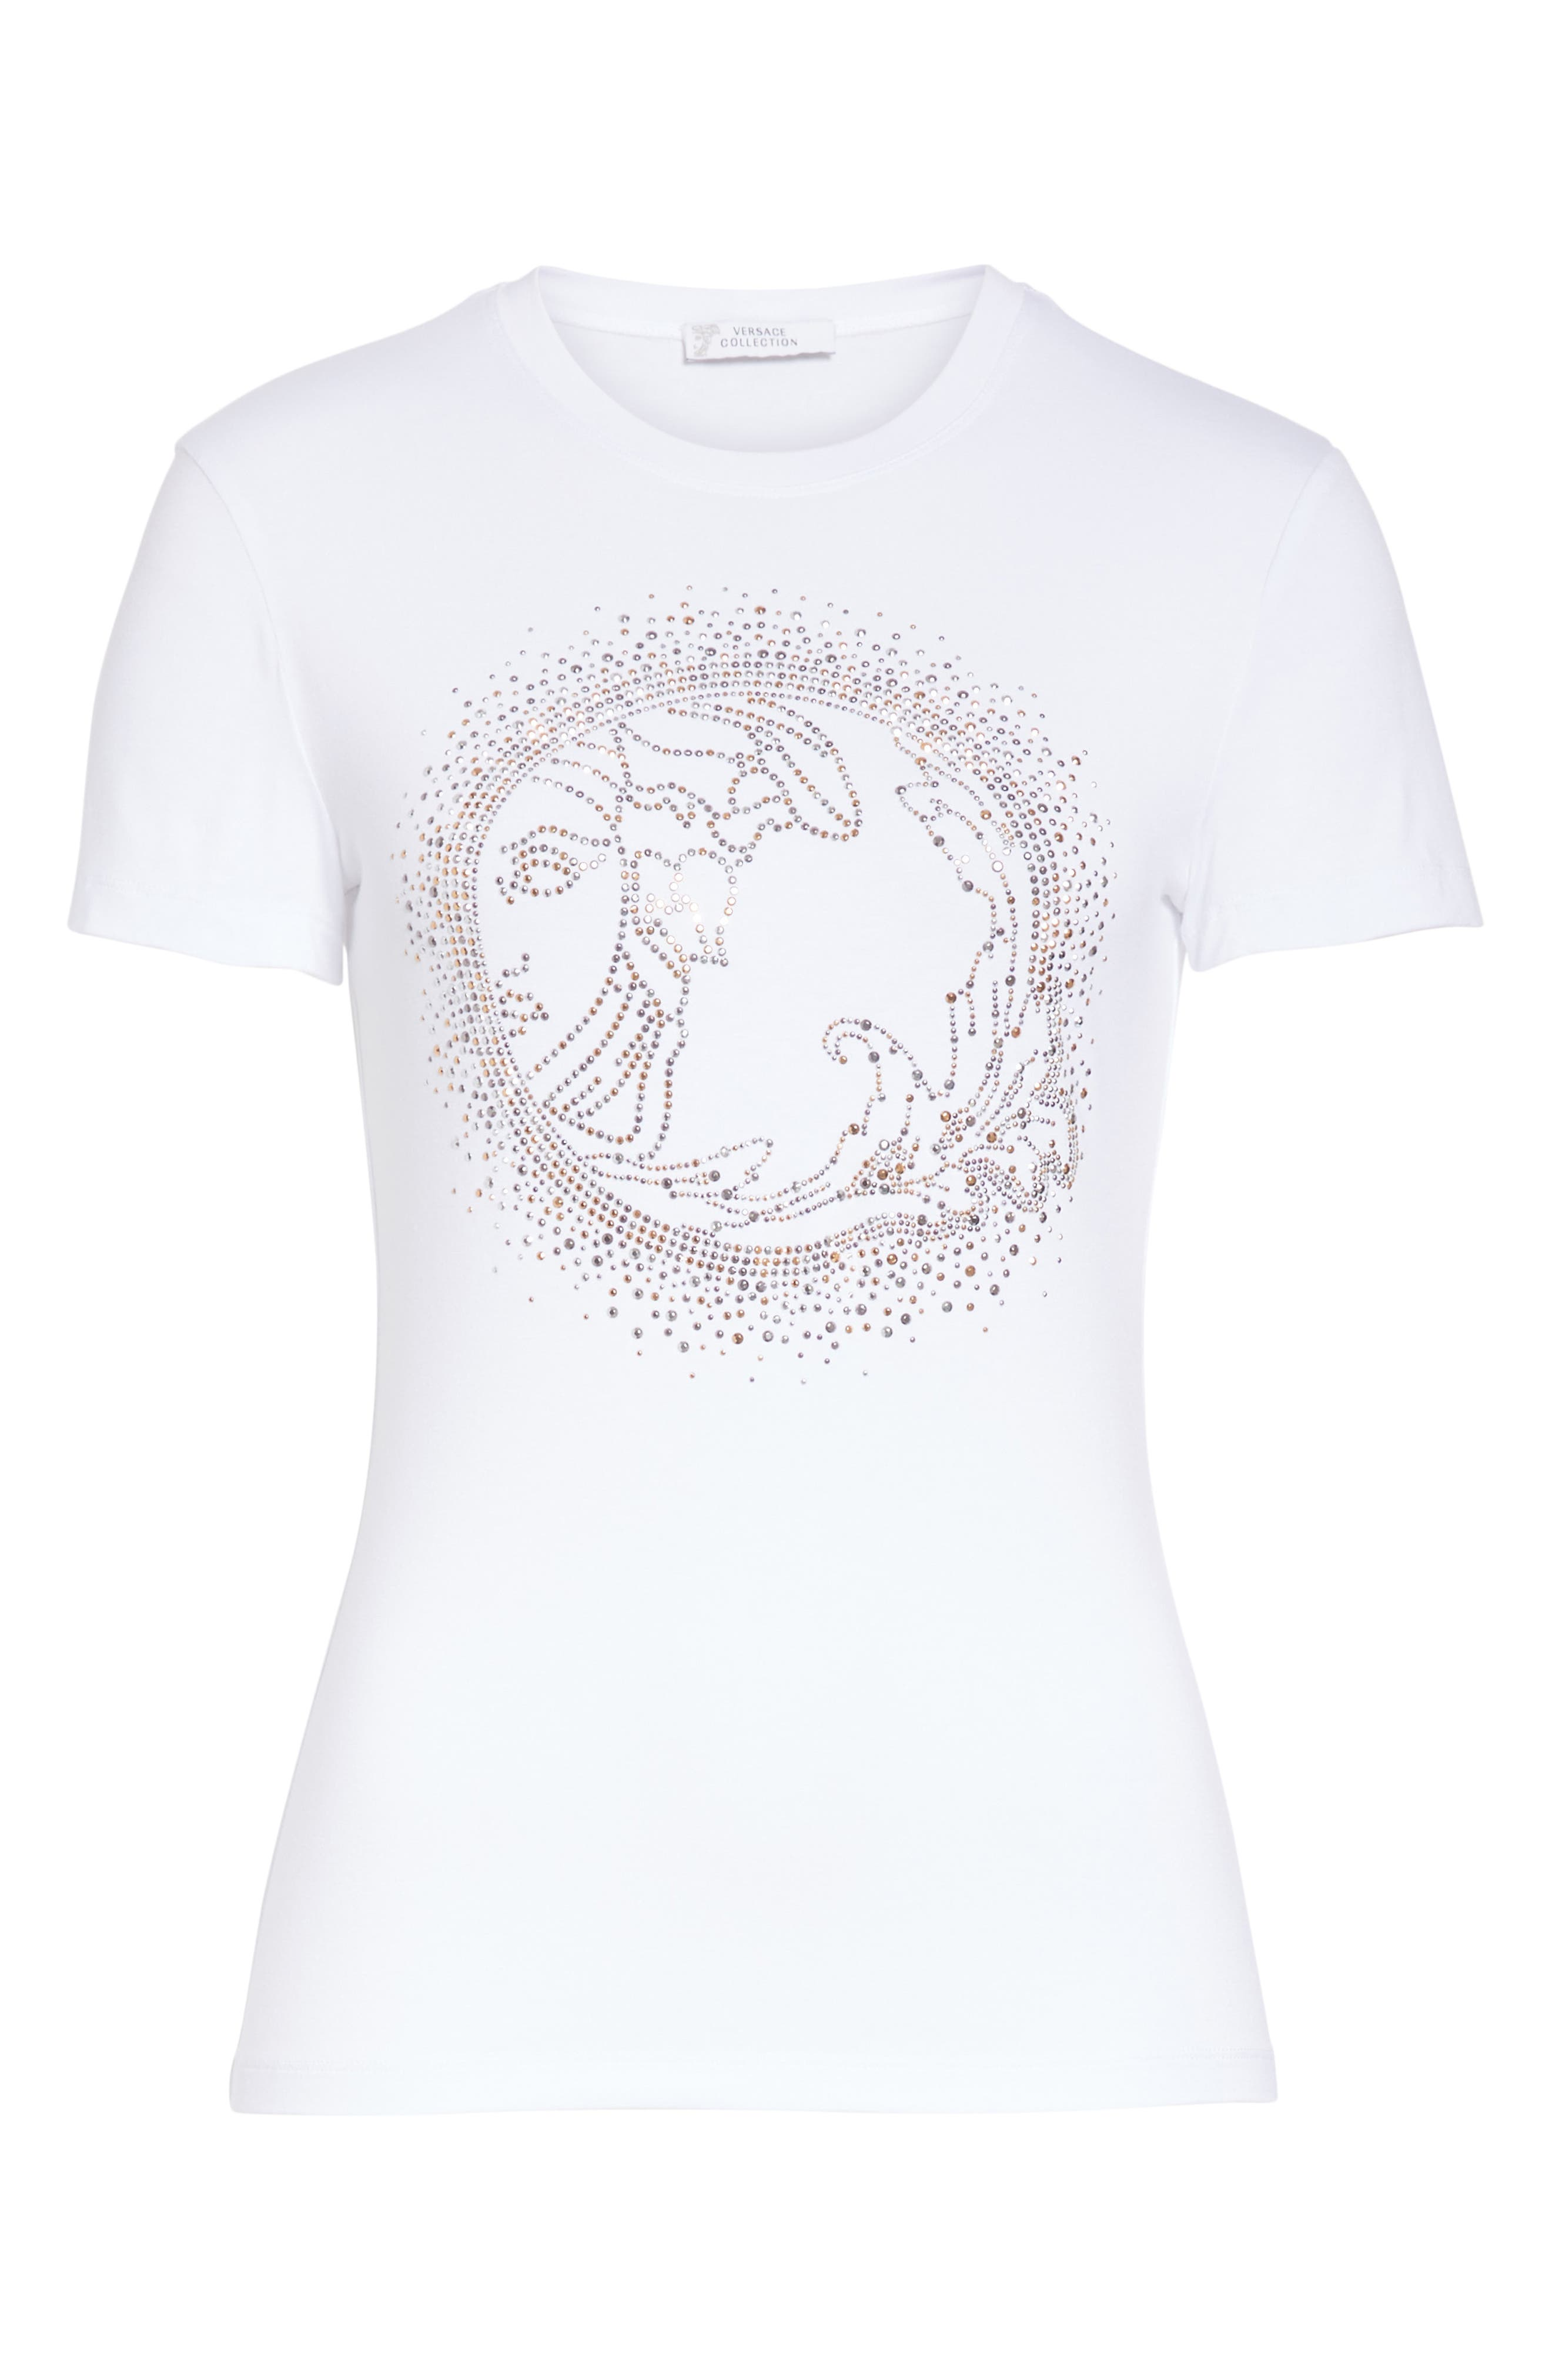 VERSACE COLLECTION, Medusa Crystal Embellished Jersey Tee, Alternate thumbnail 6, color, 111